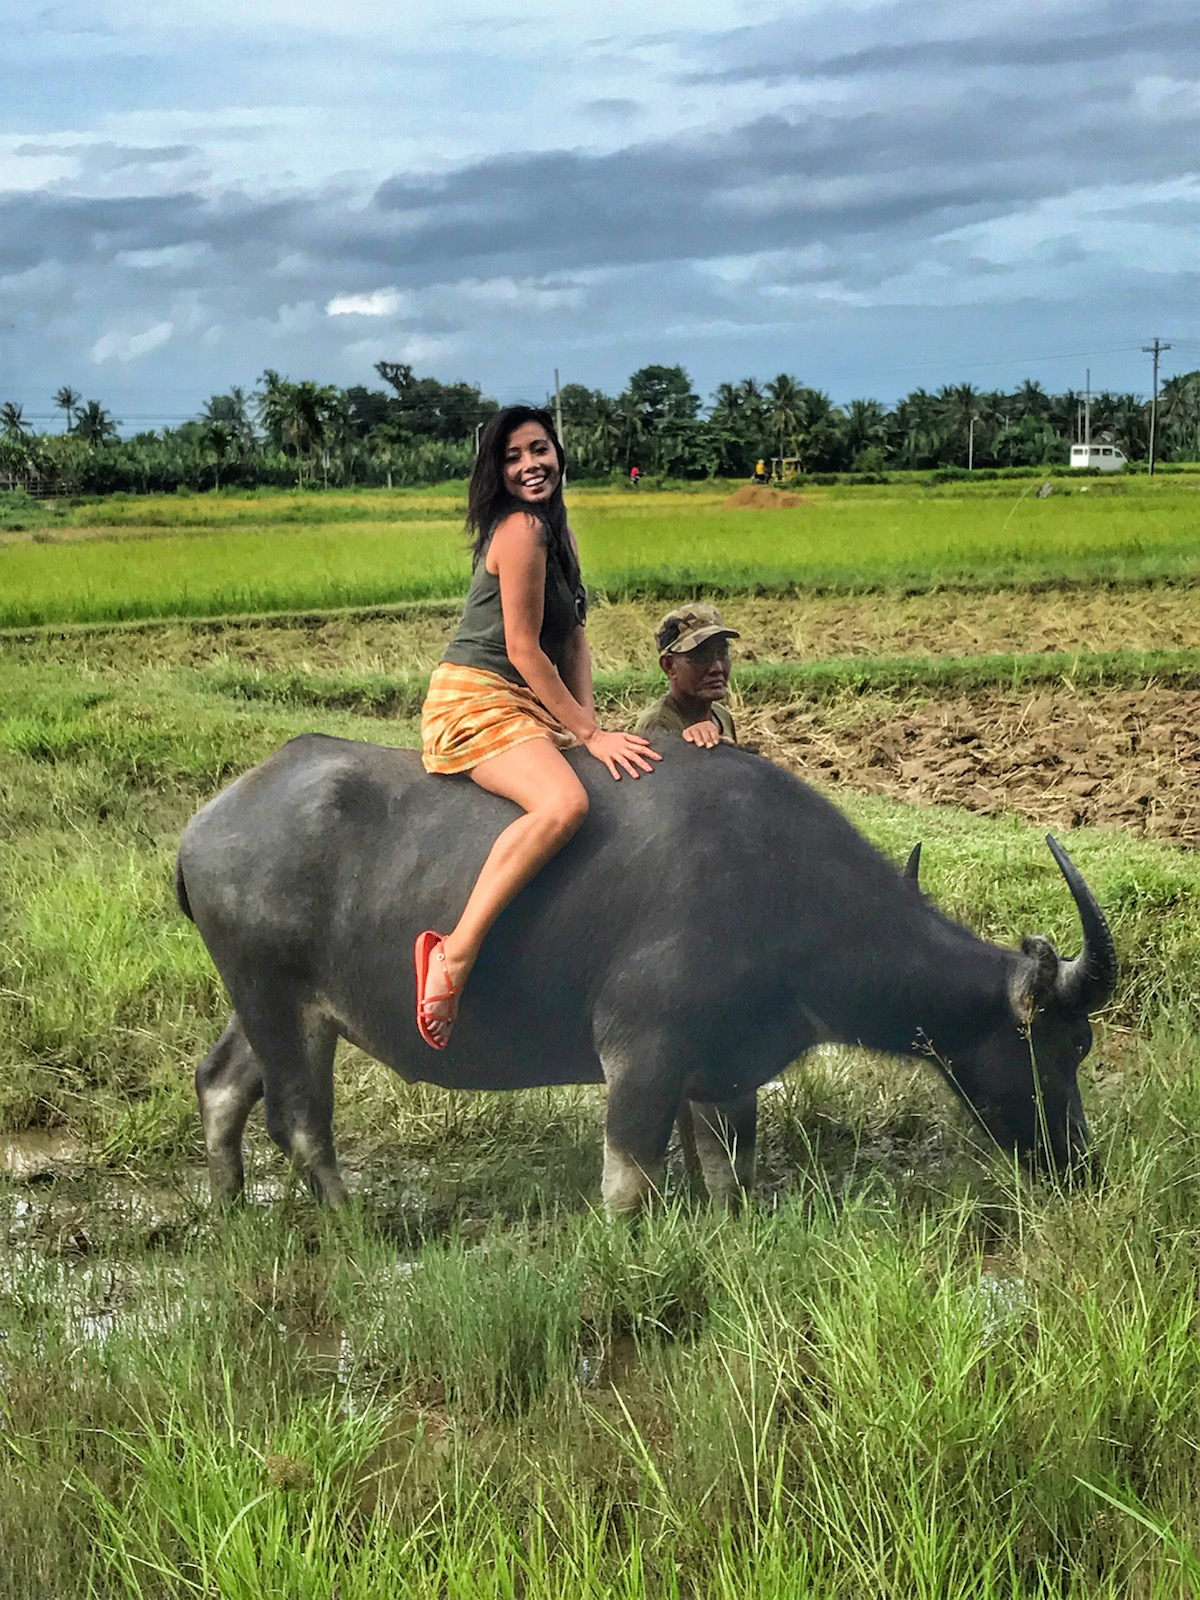 Grant-seizes-the-moment-to-ride-a-carabao-water-buffalo-in-the-rice-fields-of-Motag-Living-Museum-beside-Boracay-Philippines - Si Bugsay ug ang amigong Kabaw - Tira-Pasagad | Saksak-Sinagol